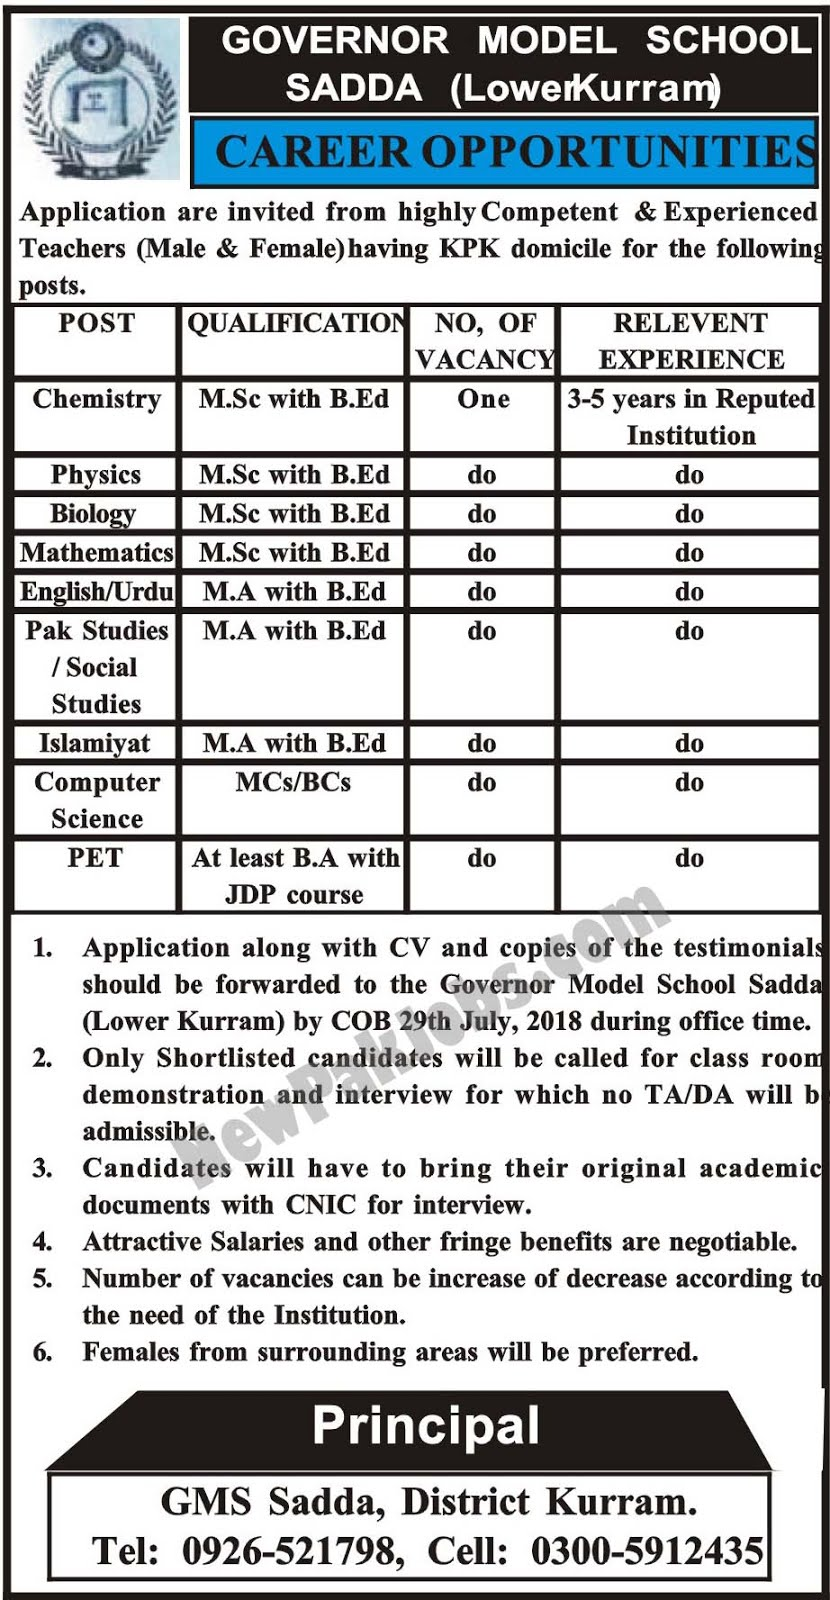 Msc,MA B.ed level jobs in Governor Model School Sadda for Teachers